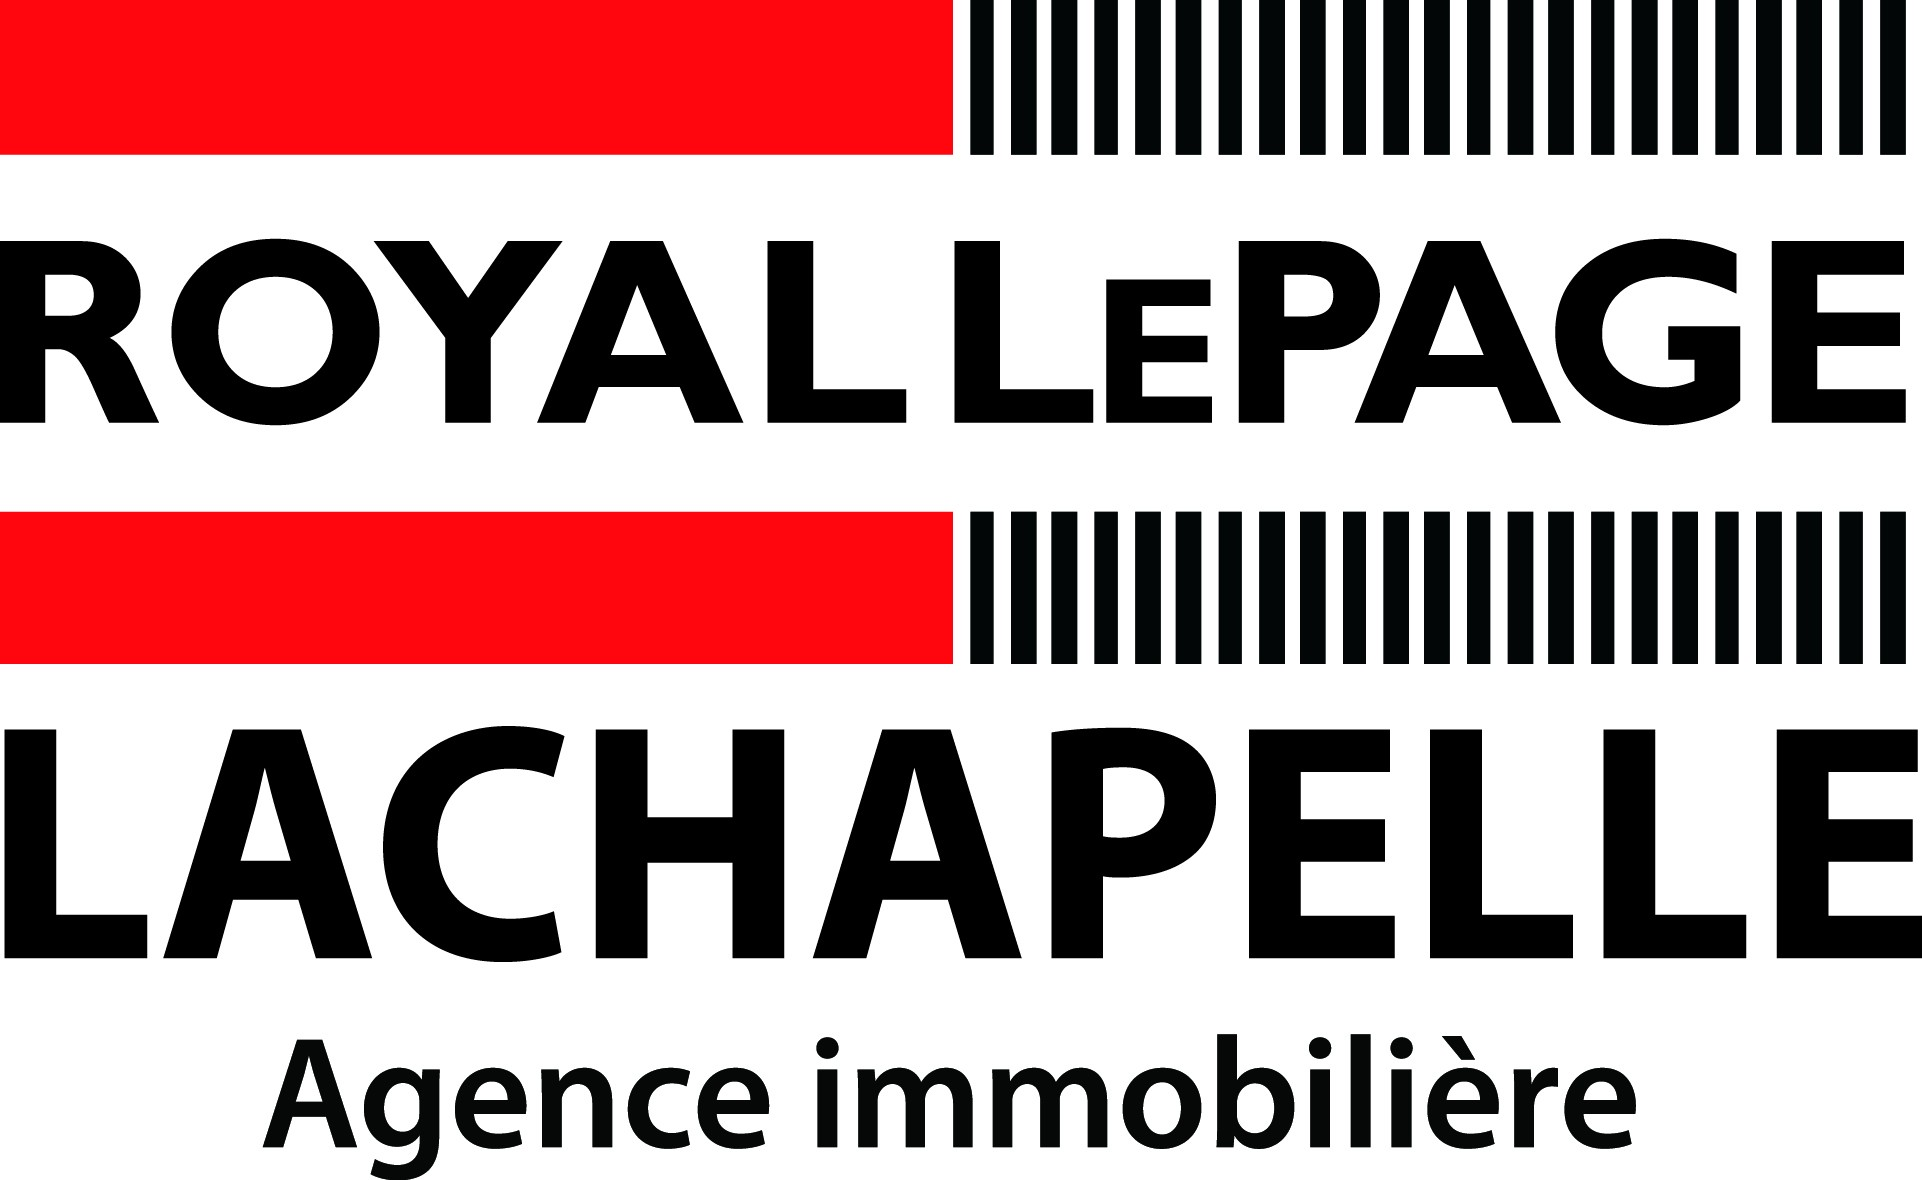 Royal Lepage Lachapelle